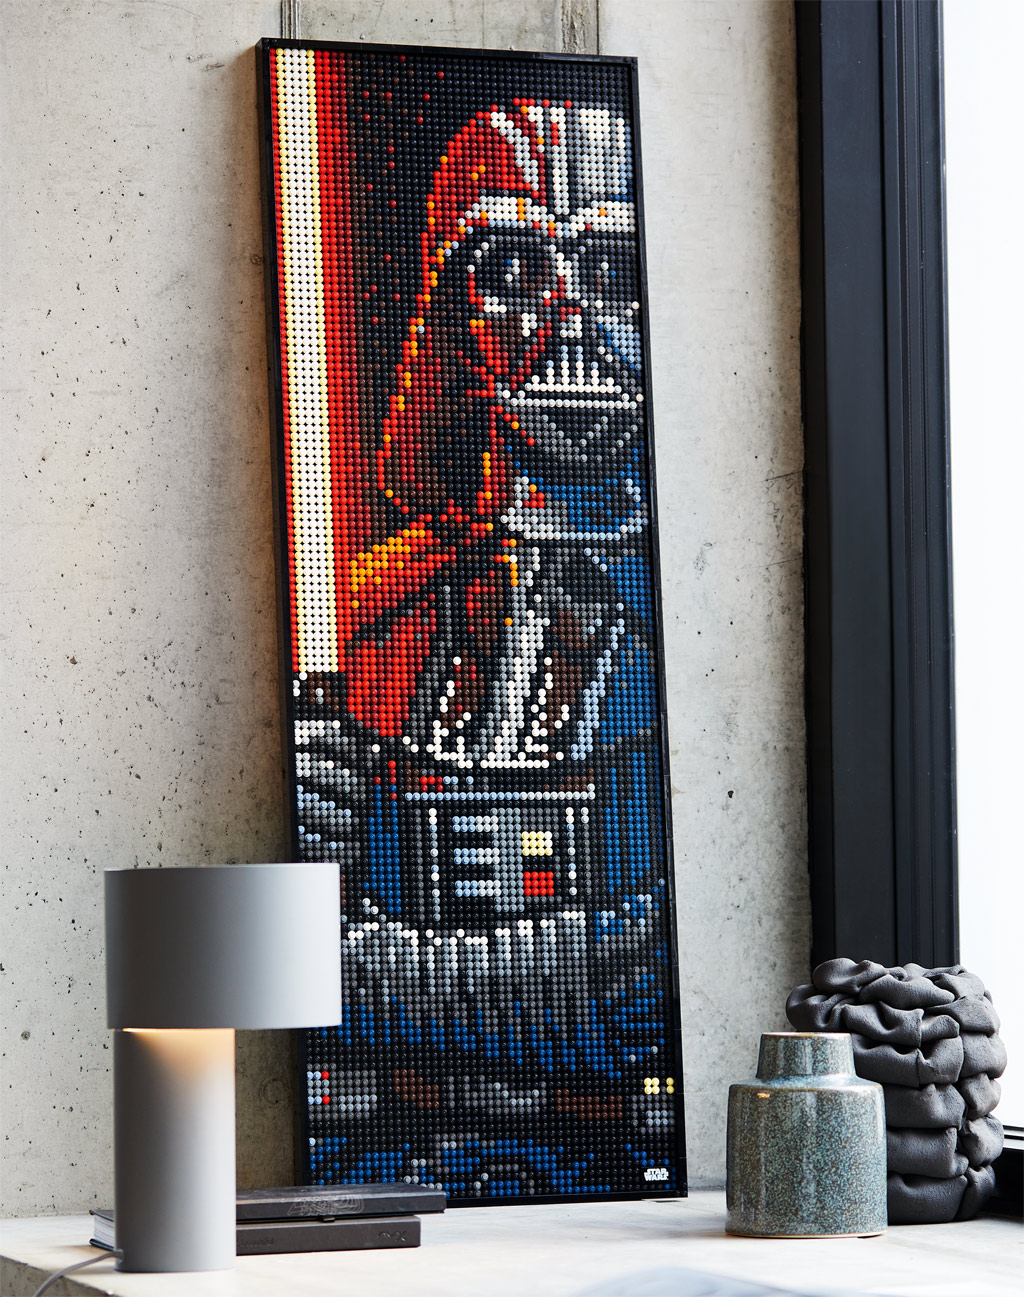 lego-arts-31200-star-wars-the-sith-darth-vader-2020 zusammengebaut.com